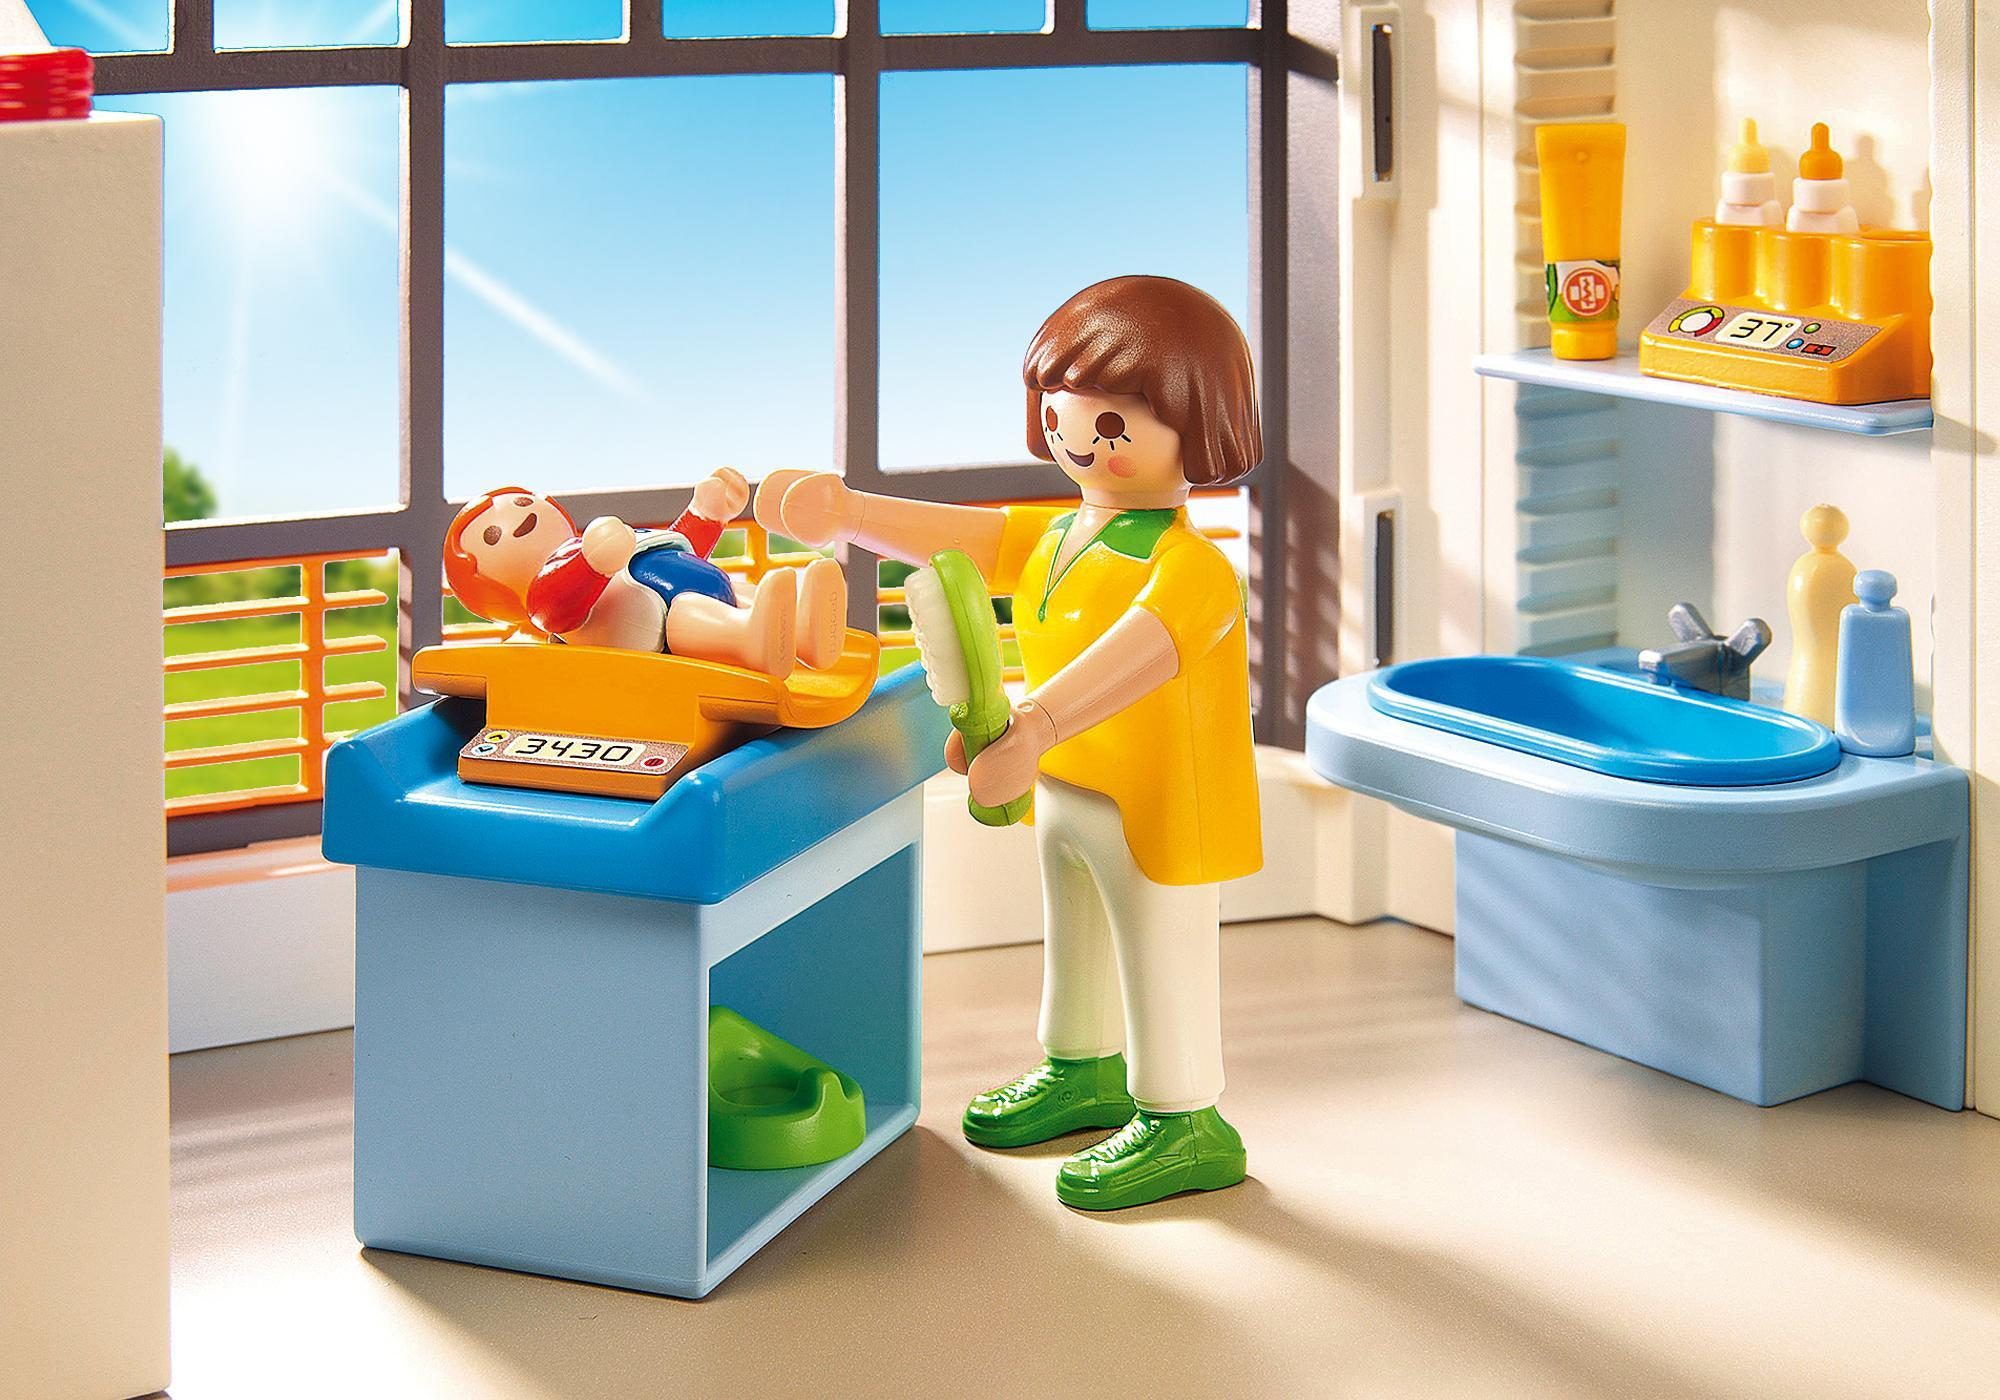 http://media.playmobil.com/i/playmobil/6657_product_extra3/Hospital Infantil